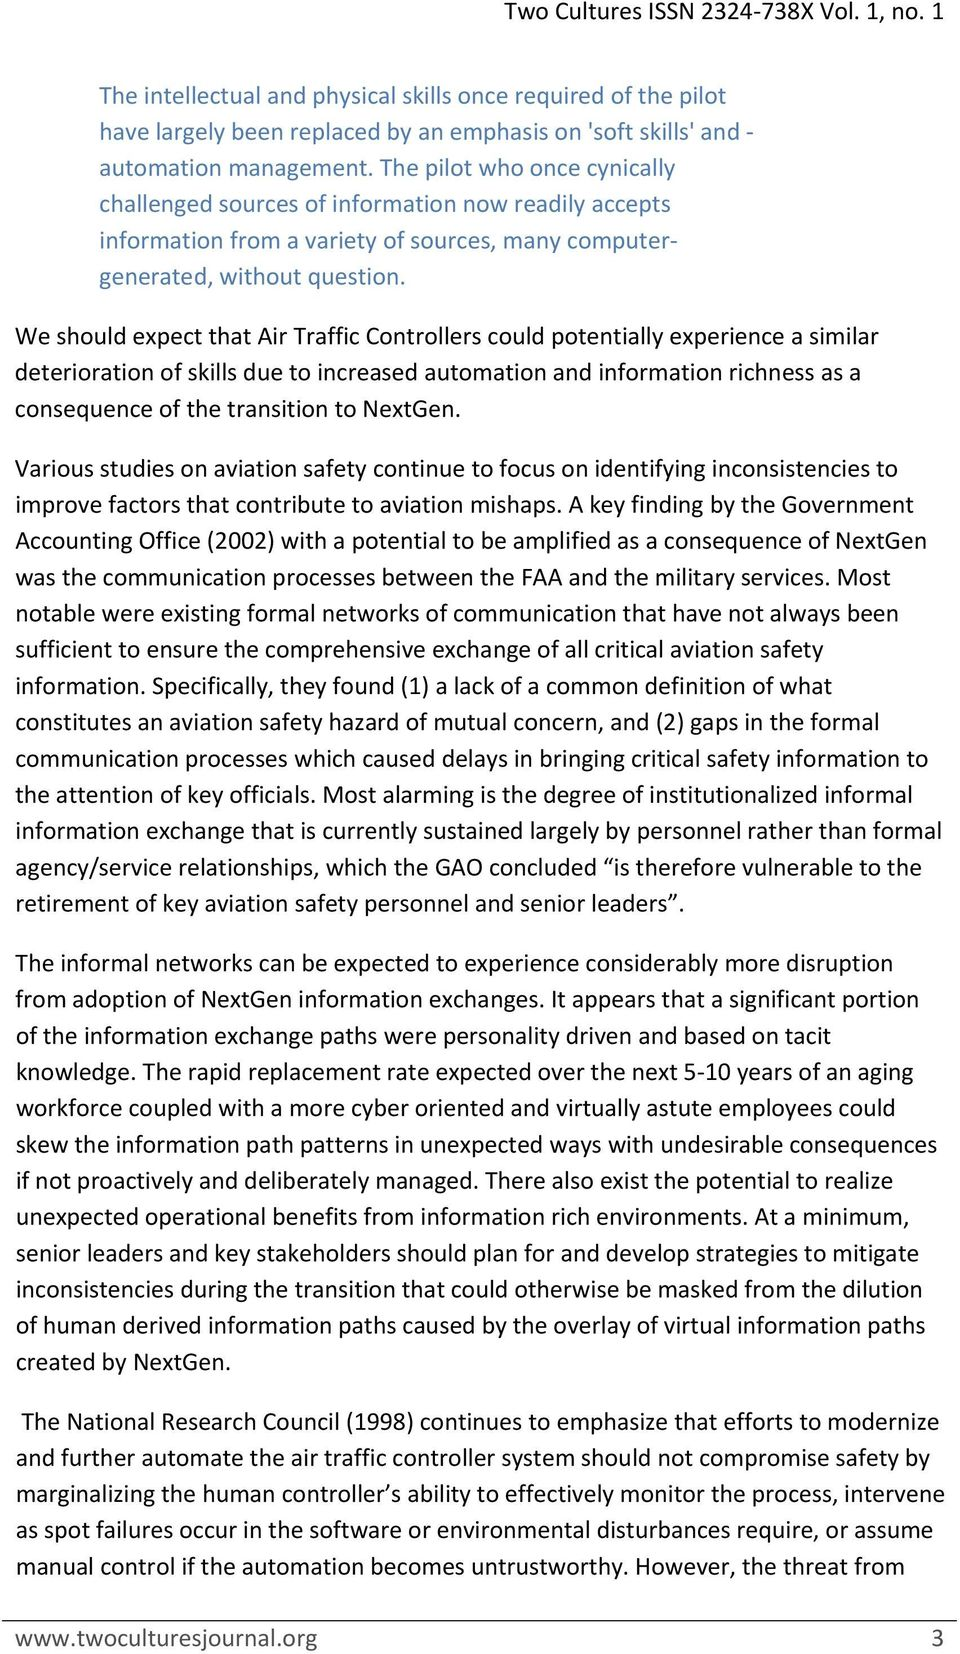 We should expect that Air Traffic Controllers could potentially experience a similar deterioration of skills due to increased automation and information richness as a consequence of the transition to